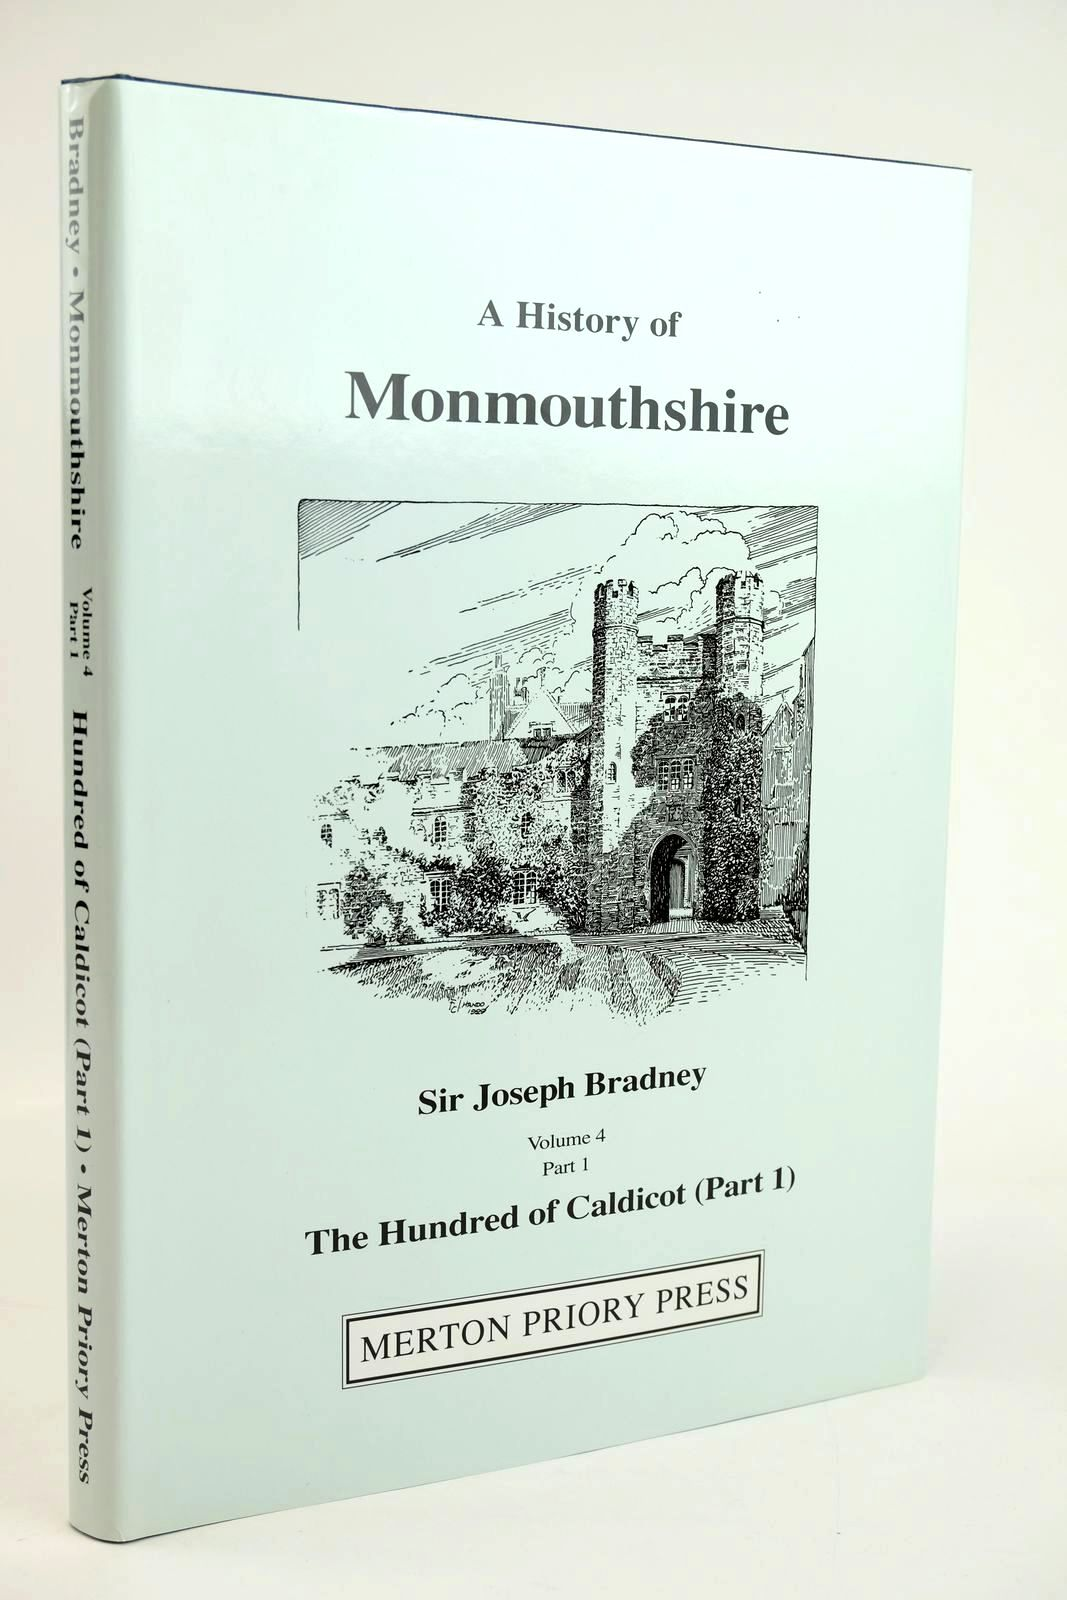 Photo of A HISTORY OF MONMOUTHSHIRE THE HUNDRED OF CALDICOT PART 1 written by Bradney, Joseph published by Merton Priory Press (STOCK CODE: 1319373)  for sale by Stella & Rose's Books